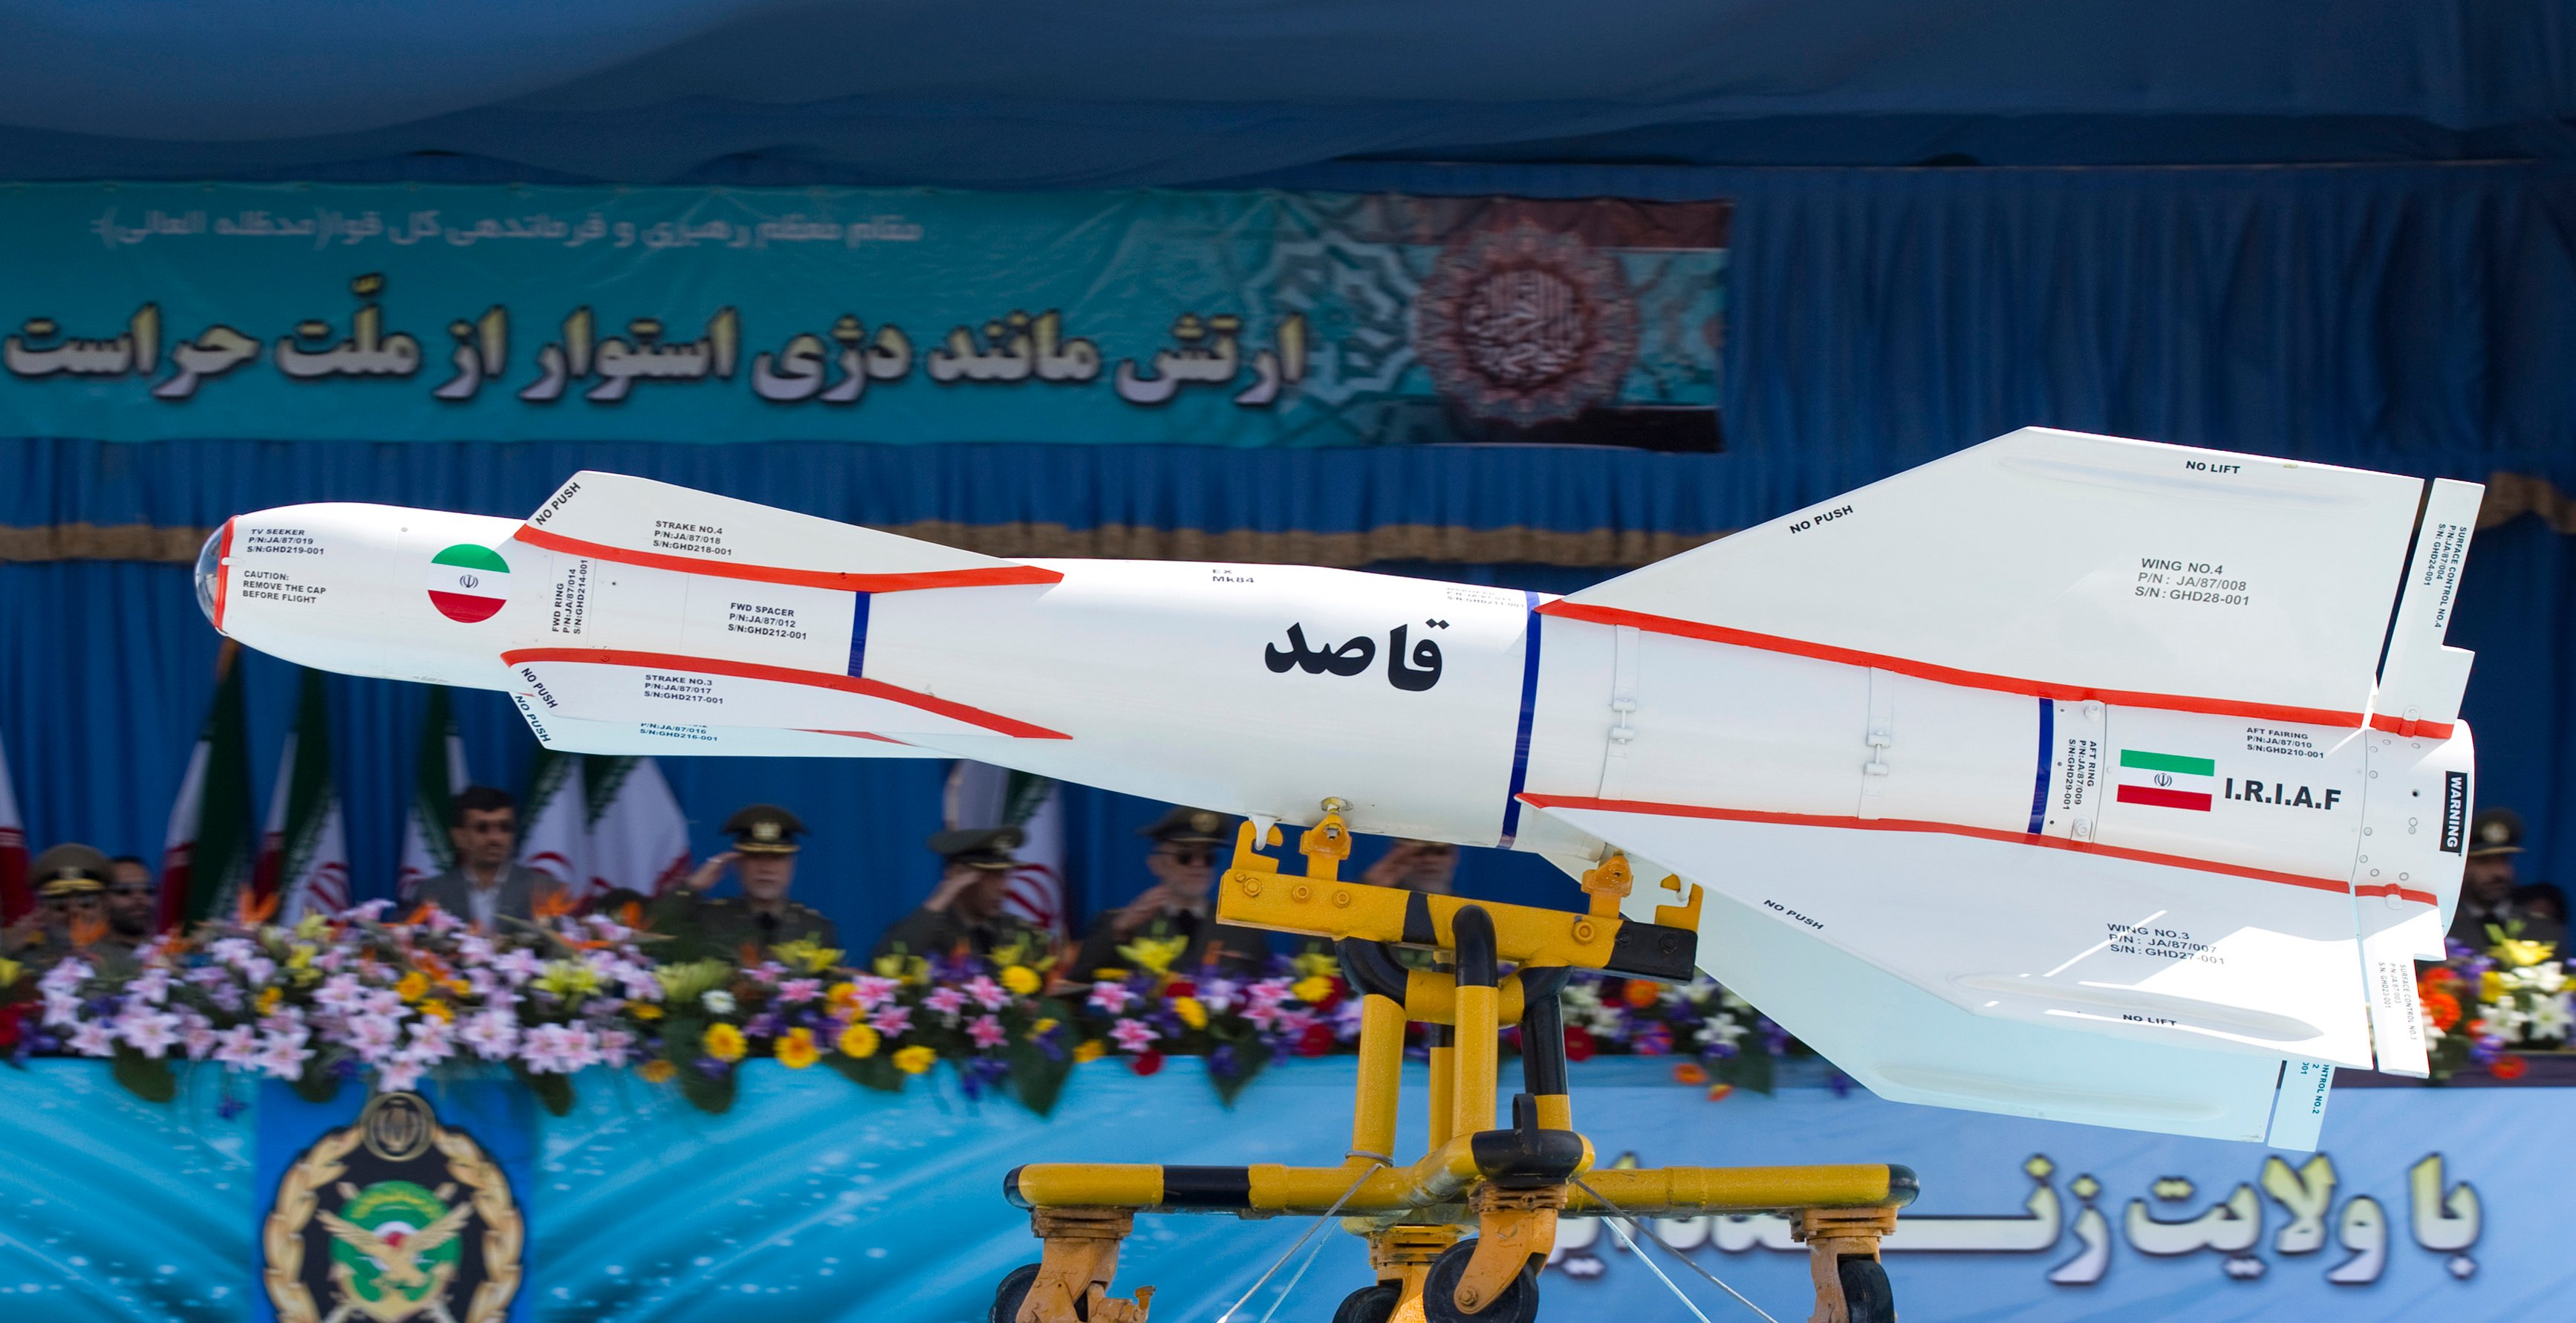 Terrifying: Watch Iran Practice a Missile Attack on Israel